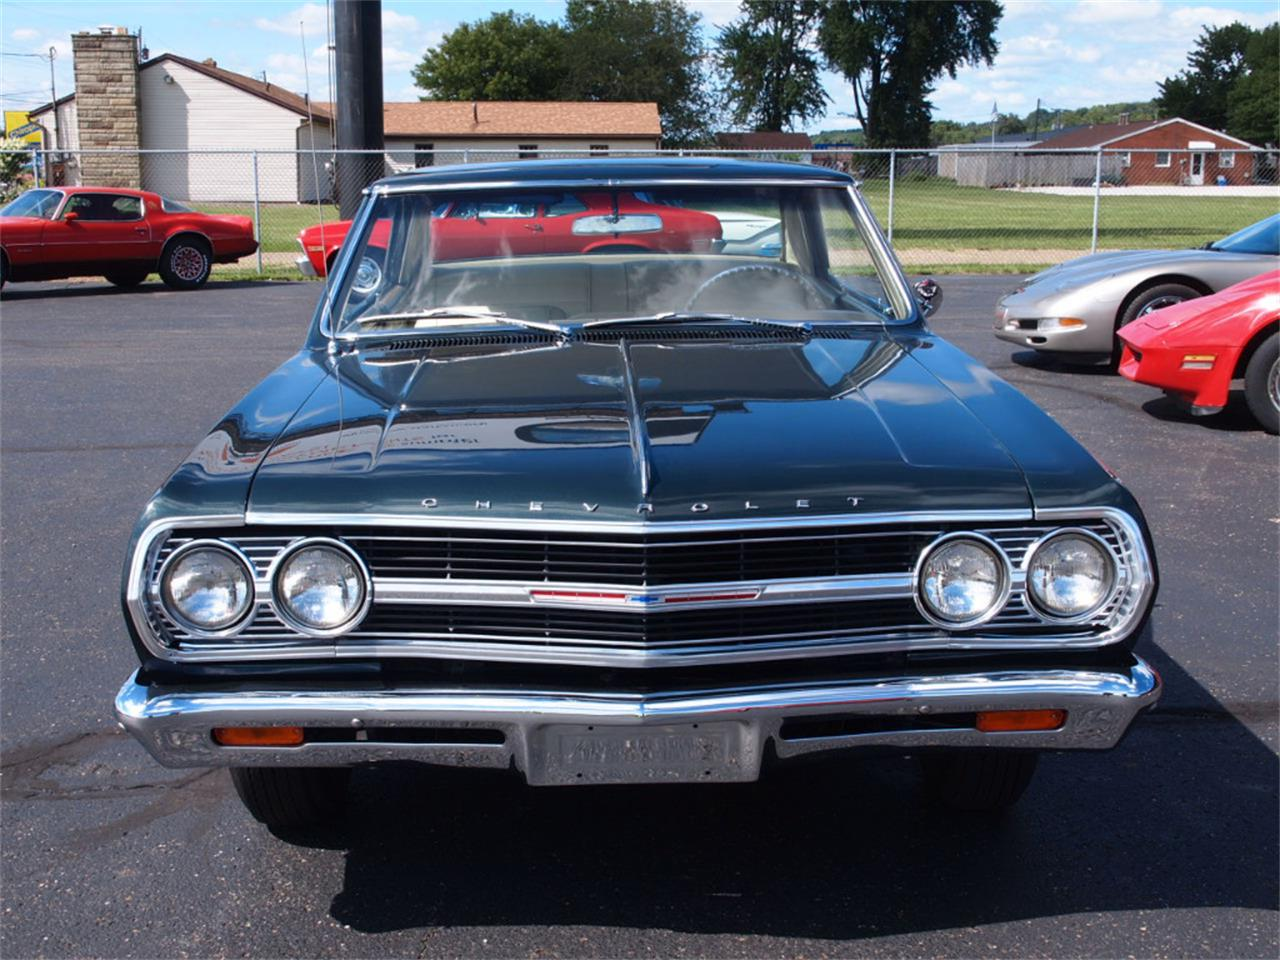 Large Picture of '65 Chevrolet Malibu located in Ohio Offered by Ohio Corvettes and Muscle Cars - LIQU